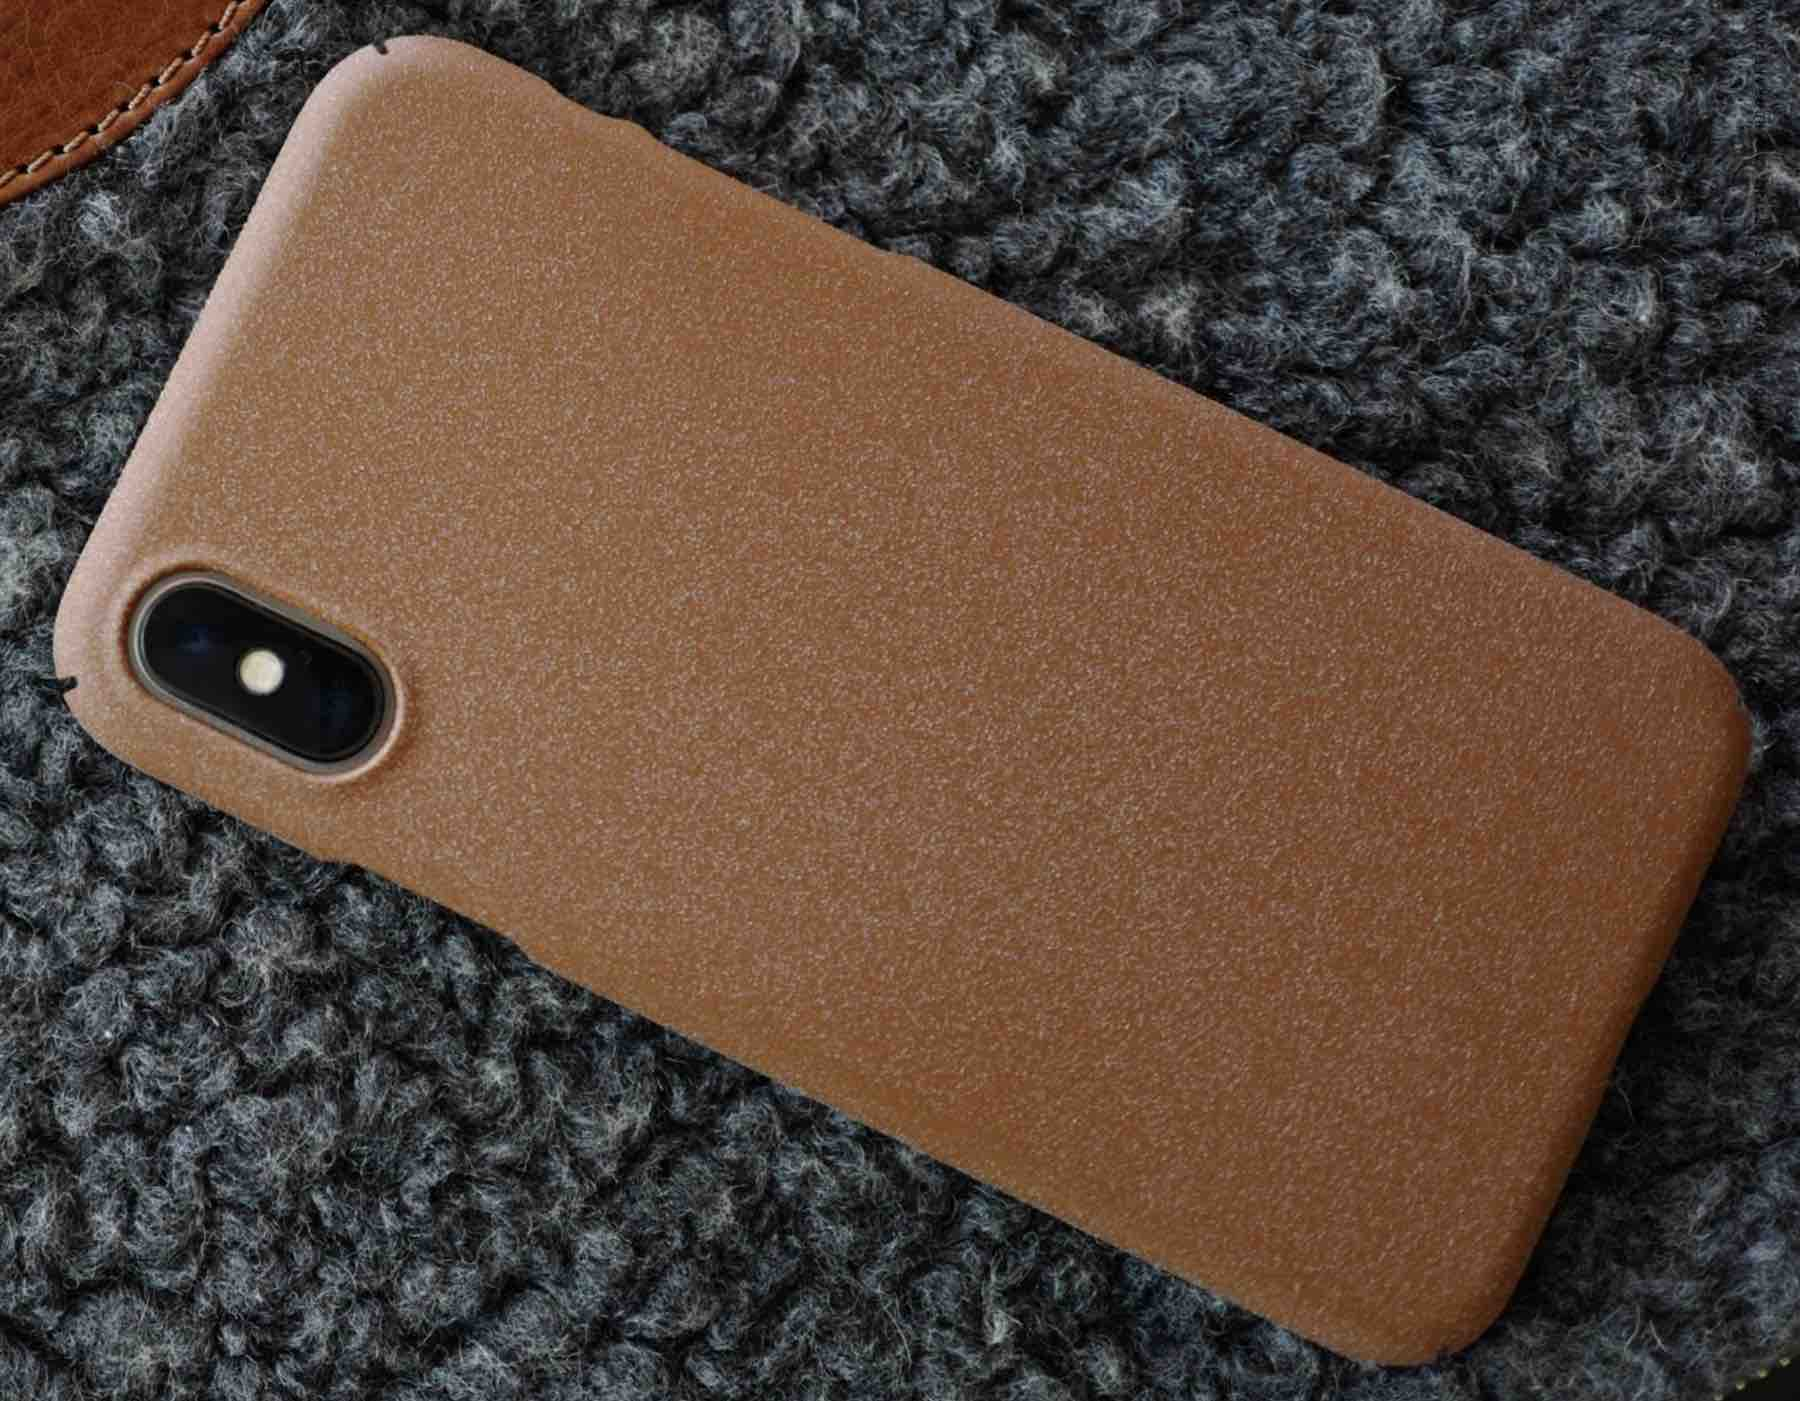 hard-graft-full-on-grainy-case-for-iphone-x